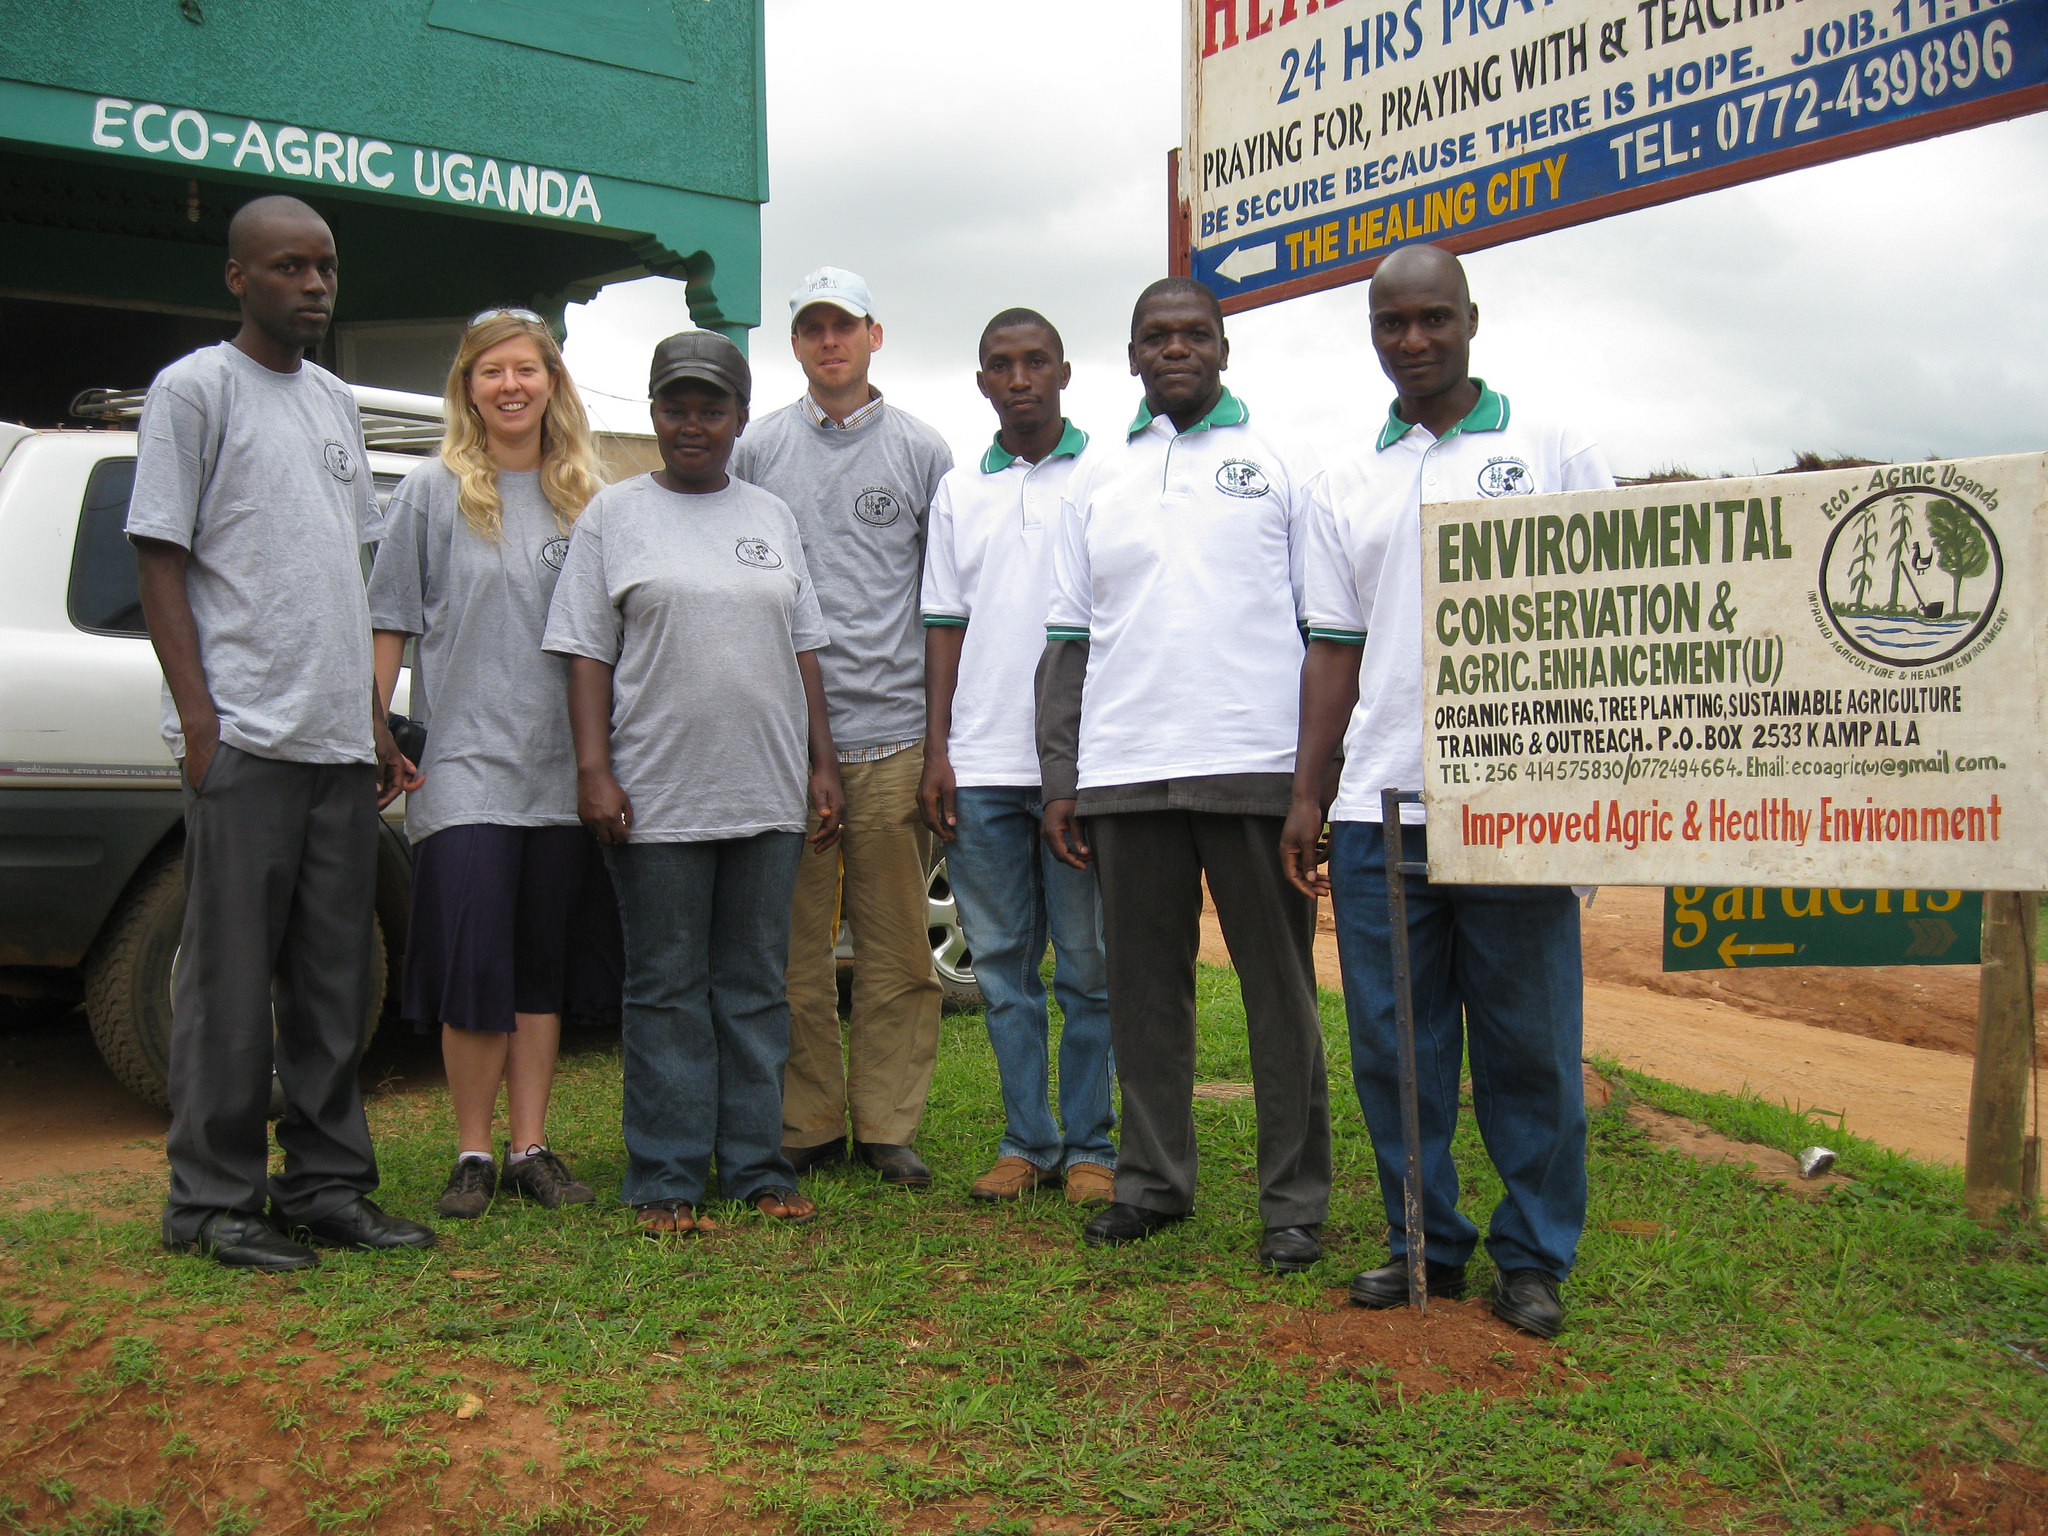 "Group of Ugandan staff and volunteers, Shapland, and Peach-Fine in matching shirts stand next to a sign that reads ""environmental conservation & agric.enhancement (U)...improved agric & healthy environment"""